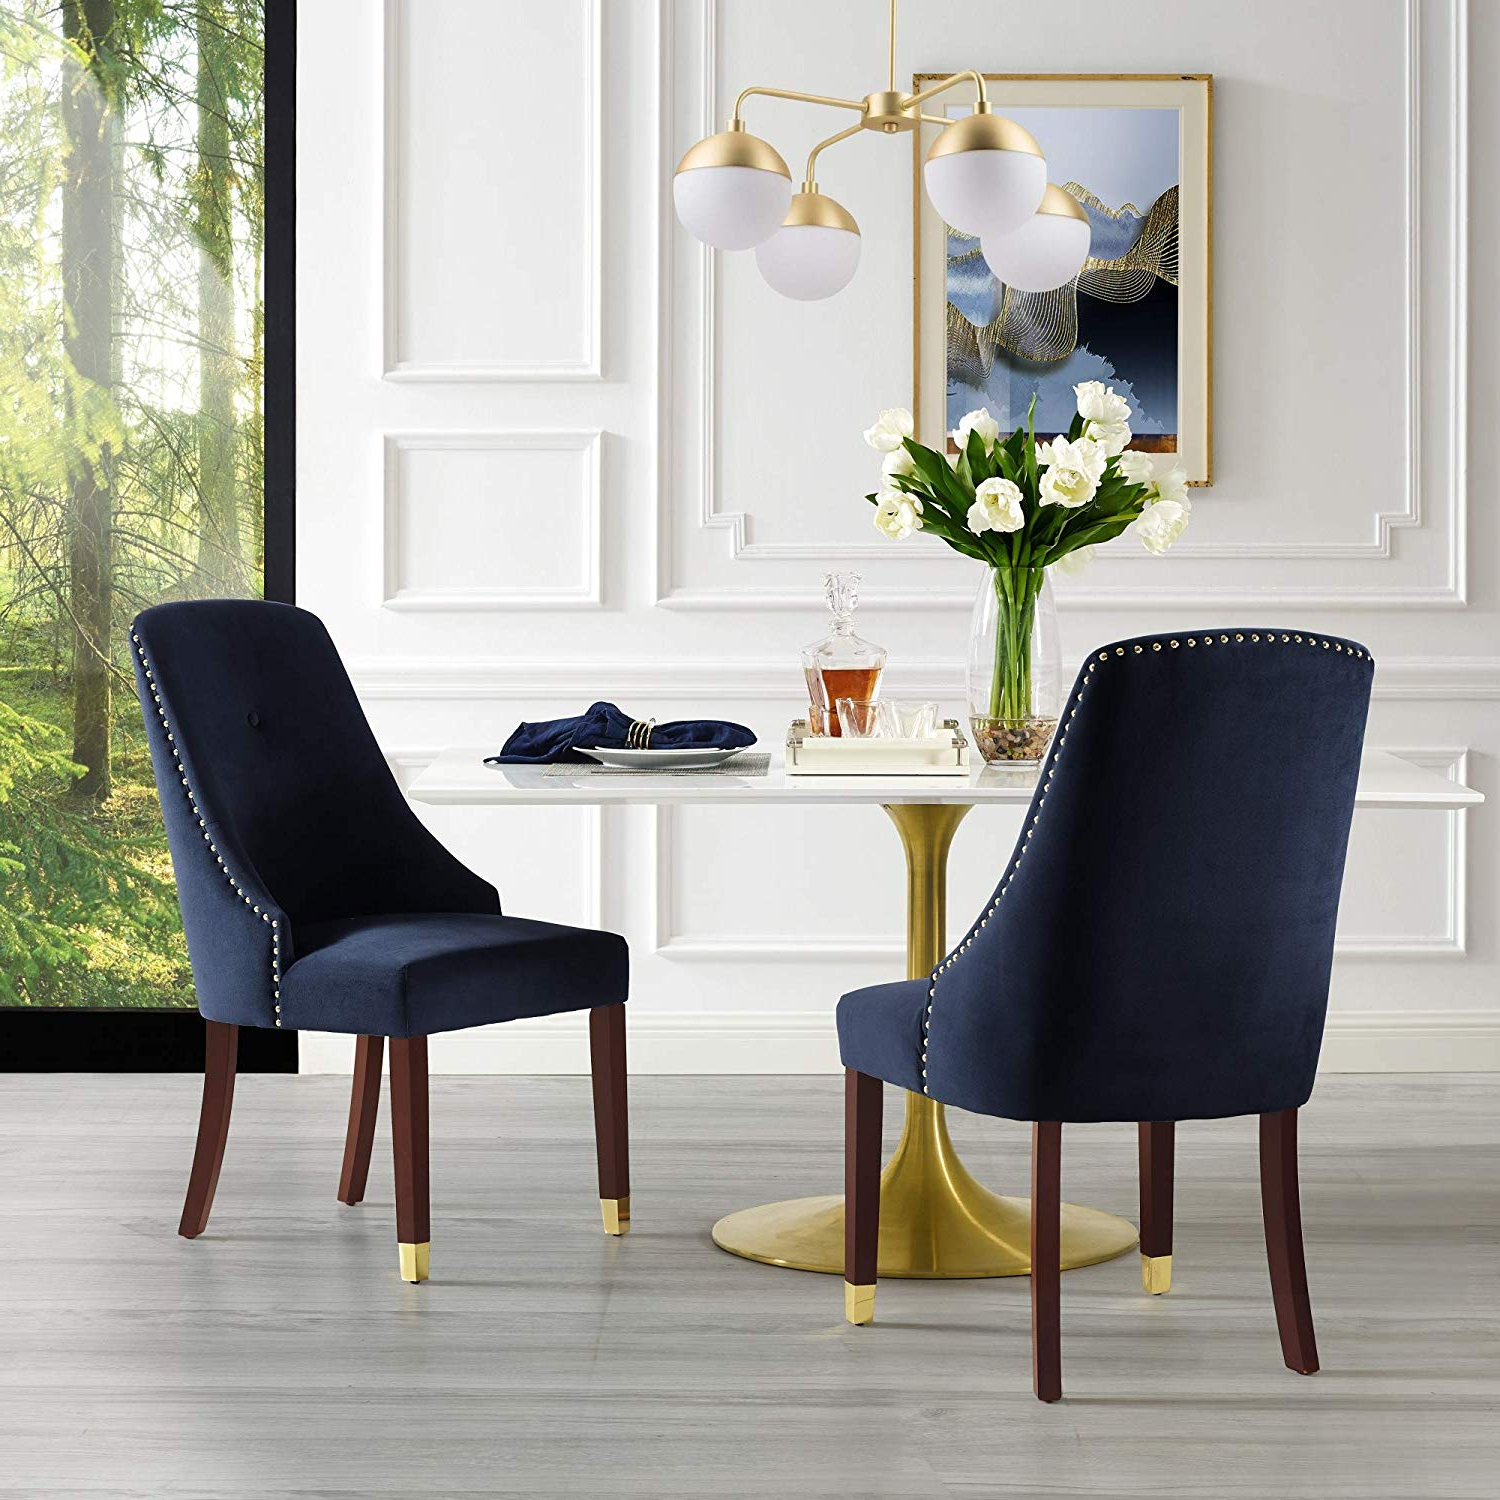 Aria 5 Piece Dining Sets Intended For 2017 Amazon – Inspiredhome Navy Velvet Dining Chair – Design: Aria (View 16 of 20)